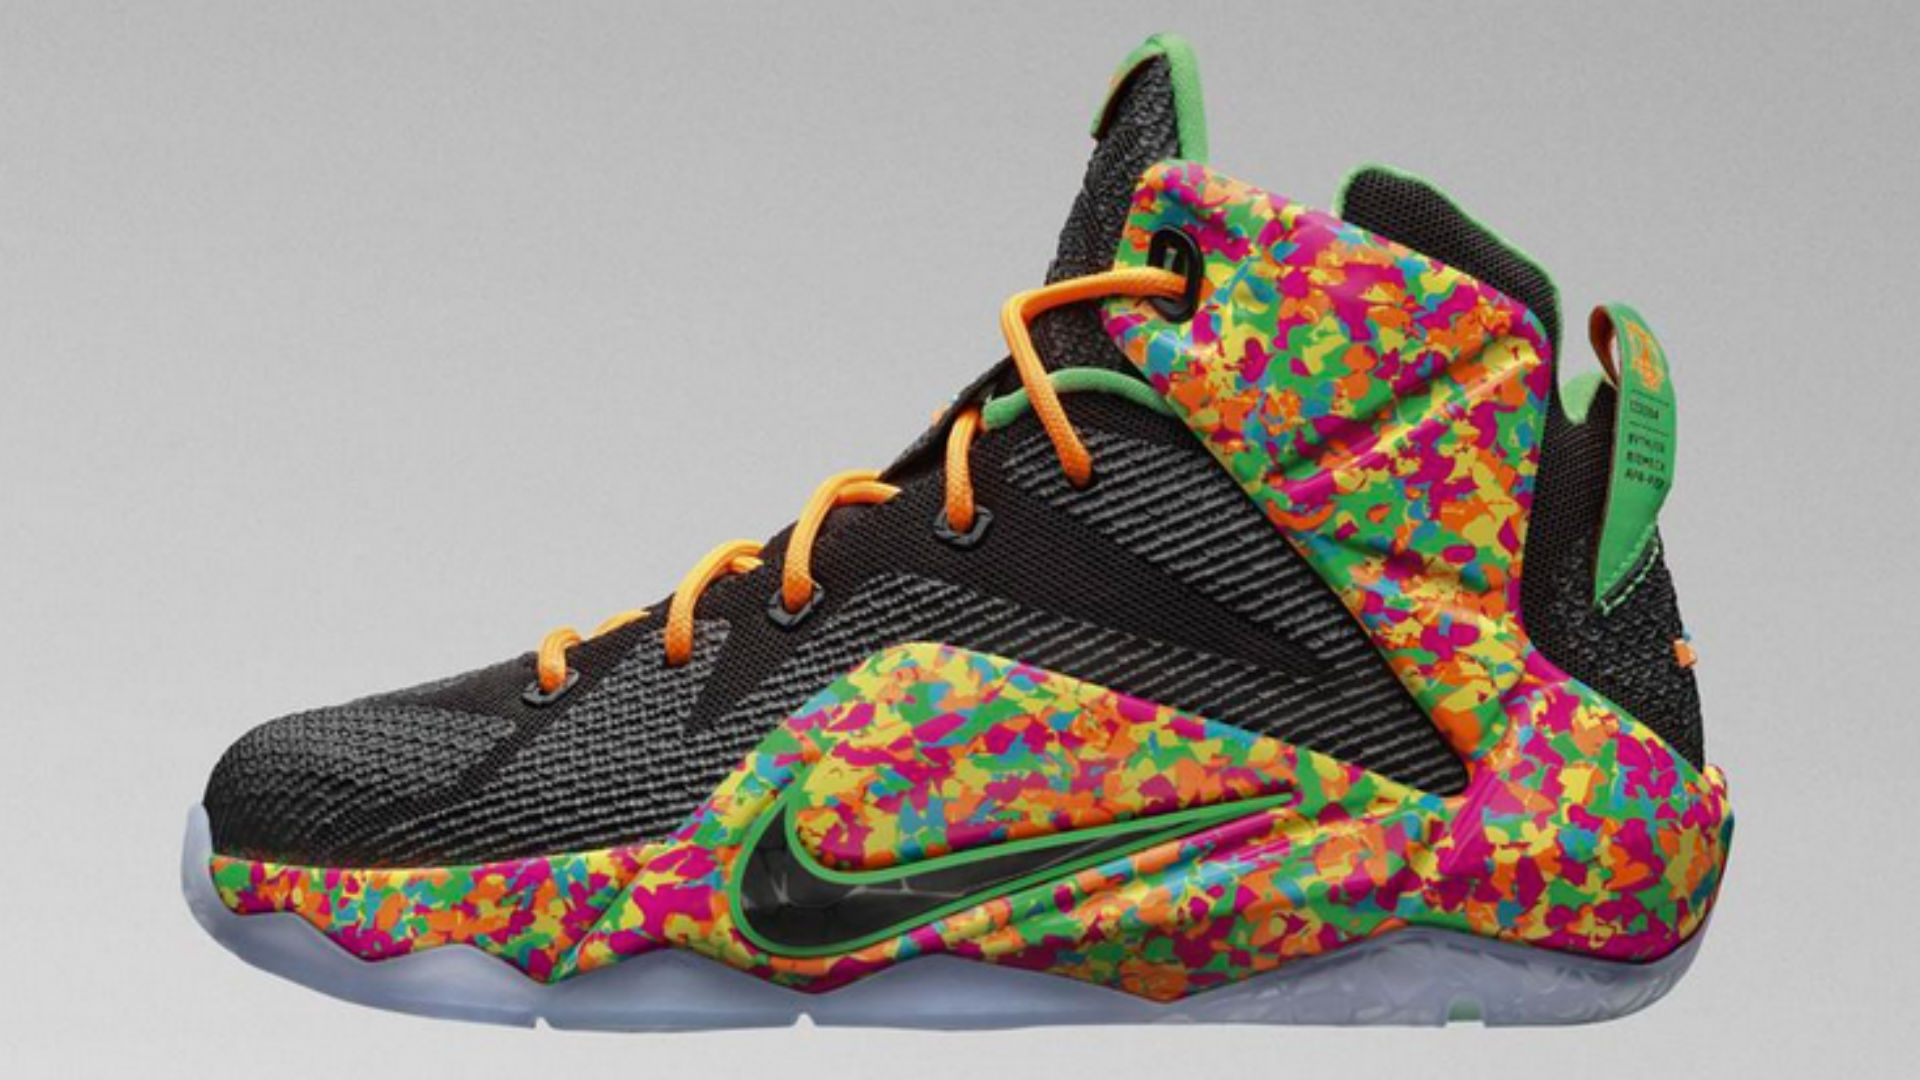 LeBron 12 gets a 'Fruity Pebbles' makeover